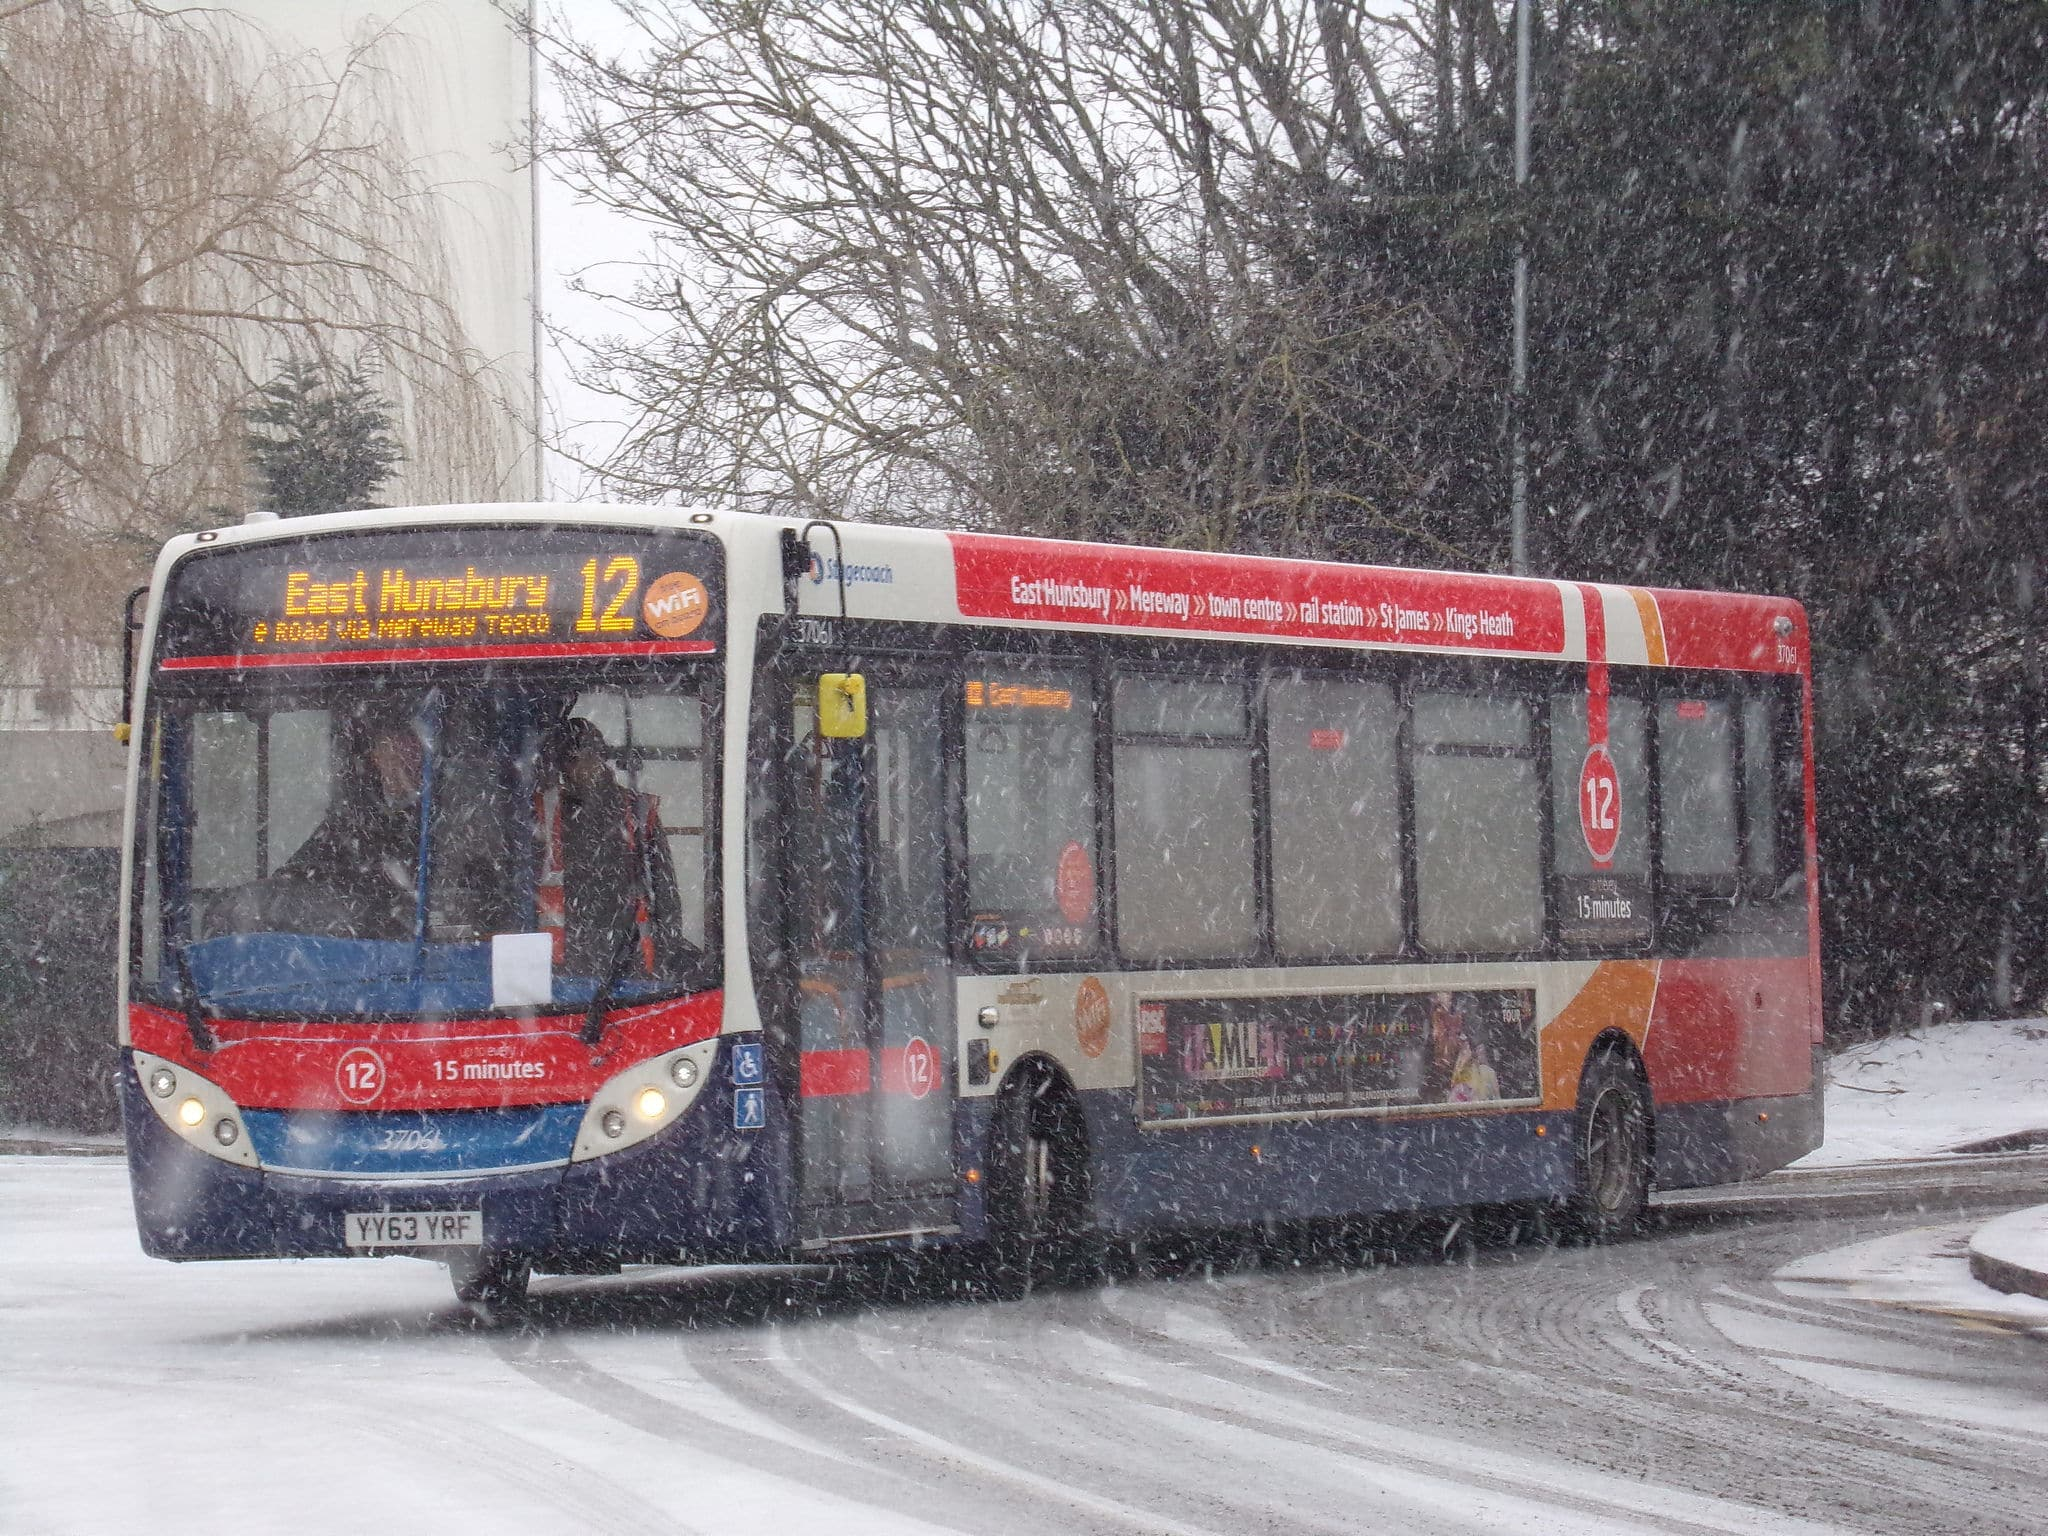 STAGECOACH SOUTH WEST SERVICES SUSPENDED FOLLOWING RED WEATHER WARNING